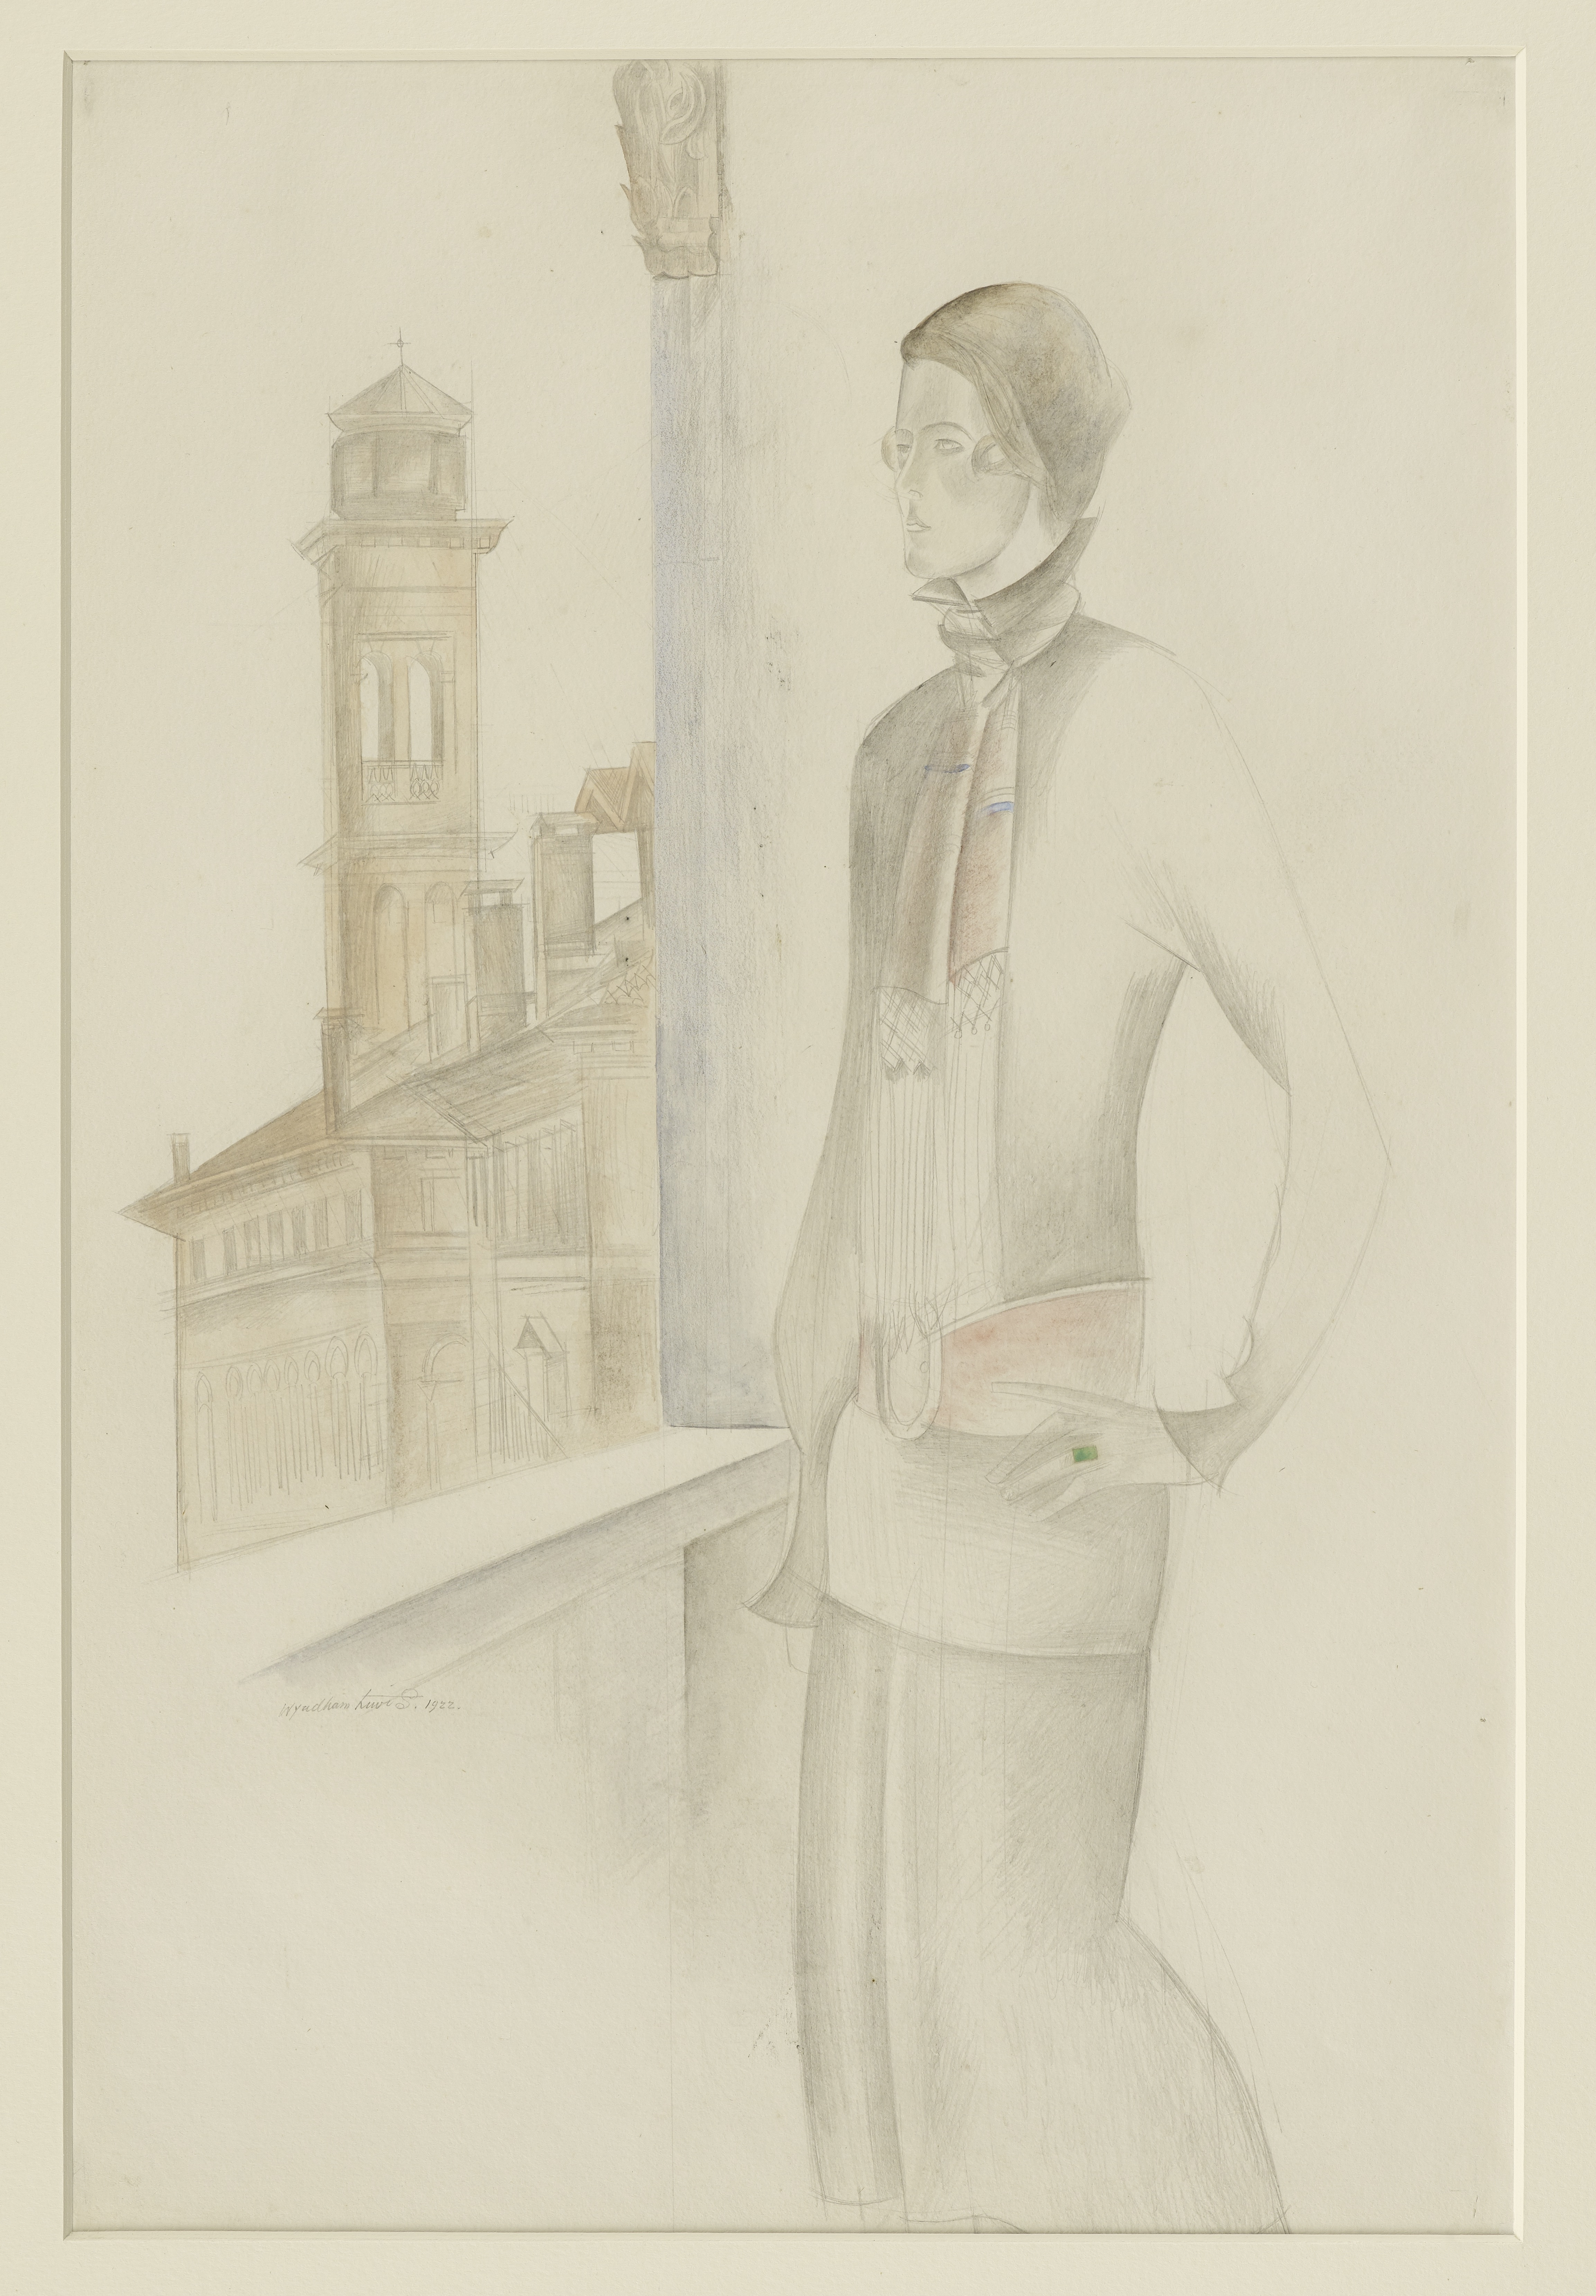 Percy wyndham lewis 1882 1957 nancy cunard venice 1922 pencil and watercolor and pastel on paper 51 2 x 33 cm courtesy british council collection